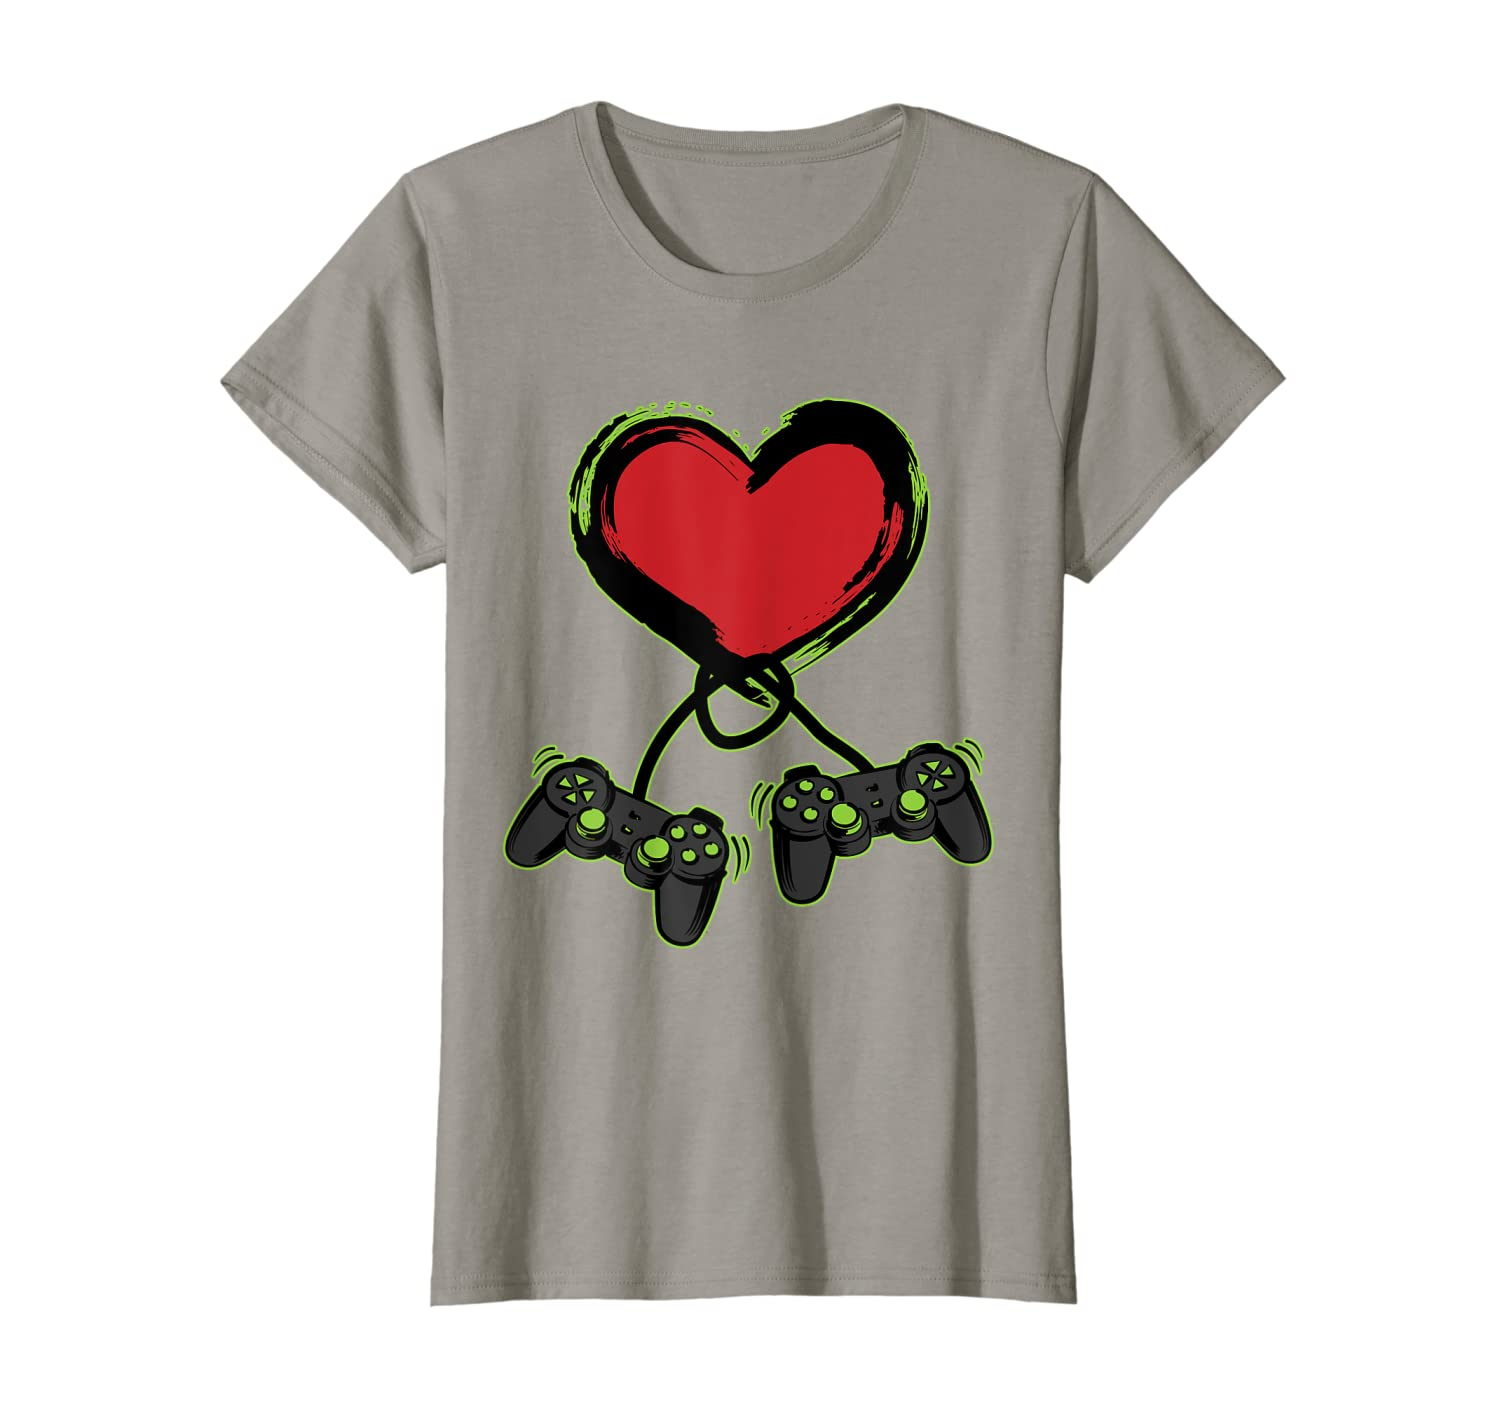 c1e9d2bdb Amazon.com: Video Gamer Heart Controller Valentine's Day Shirt Kids Boys:  Clothing